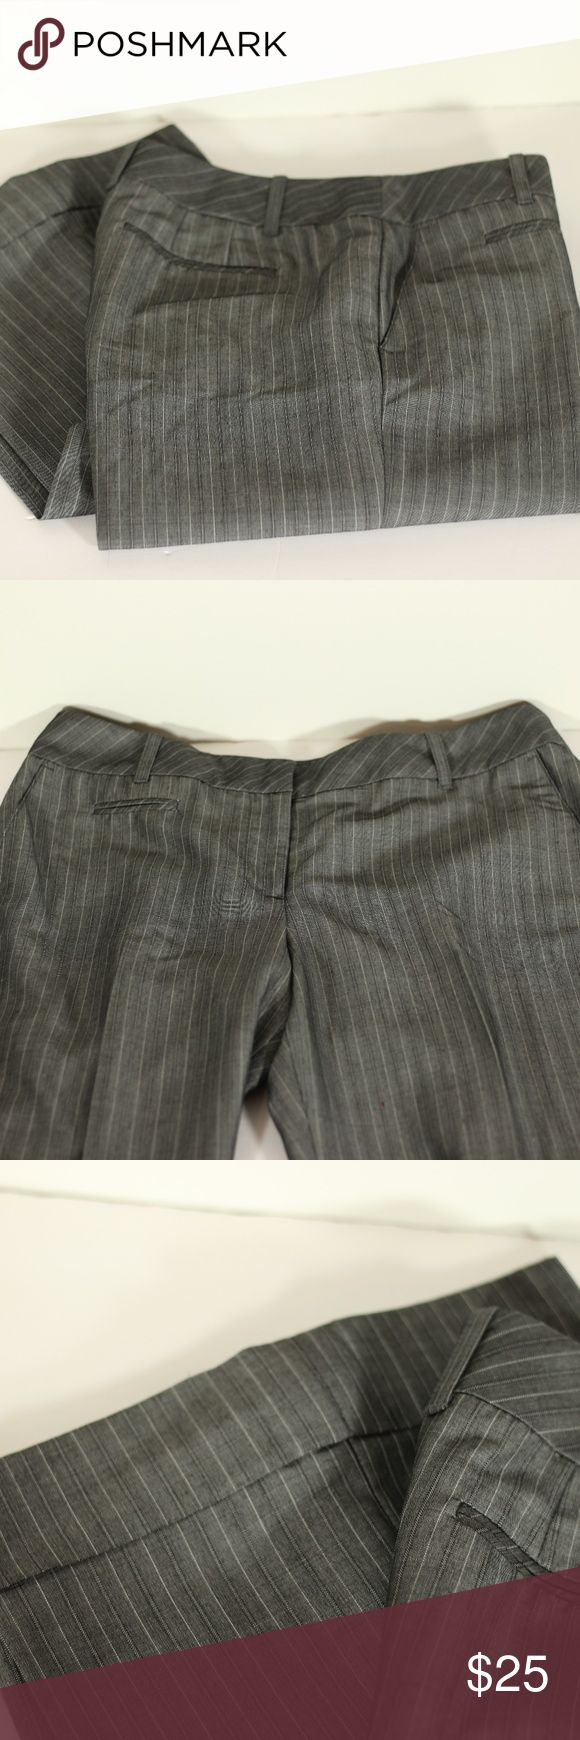 """Ann Taylor LOFT Petite Dress Striped Pants Size 6P Pre-Loved but in Excellent Used Condition. These pants feel like new! Ann Taylor LOFT Dress Pants Size 2P. Pants are color gray and feature stripes in black and white. Classic look, Ann Fit.   Approx 38"""" from waist to hem Inseam is approx 29.5"""" Boot is approx 10.5"""" wide Waist is approx 15.5"""" when laying flat  Shell: 55% rayon, 45% virgin wool Lining: 100% Acetate Dry Clean Only LOFT Pants Boot Cut & Flare"""